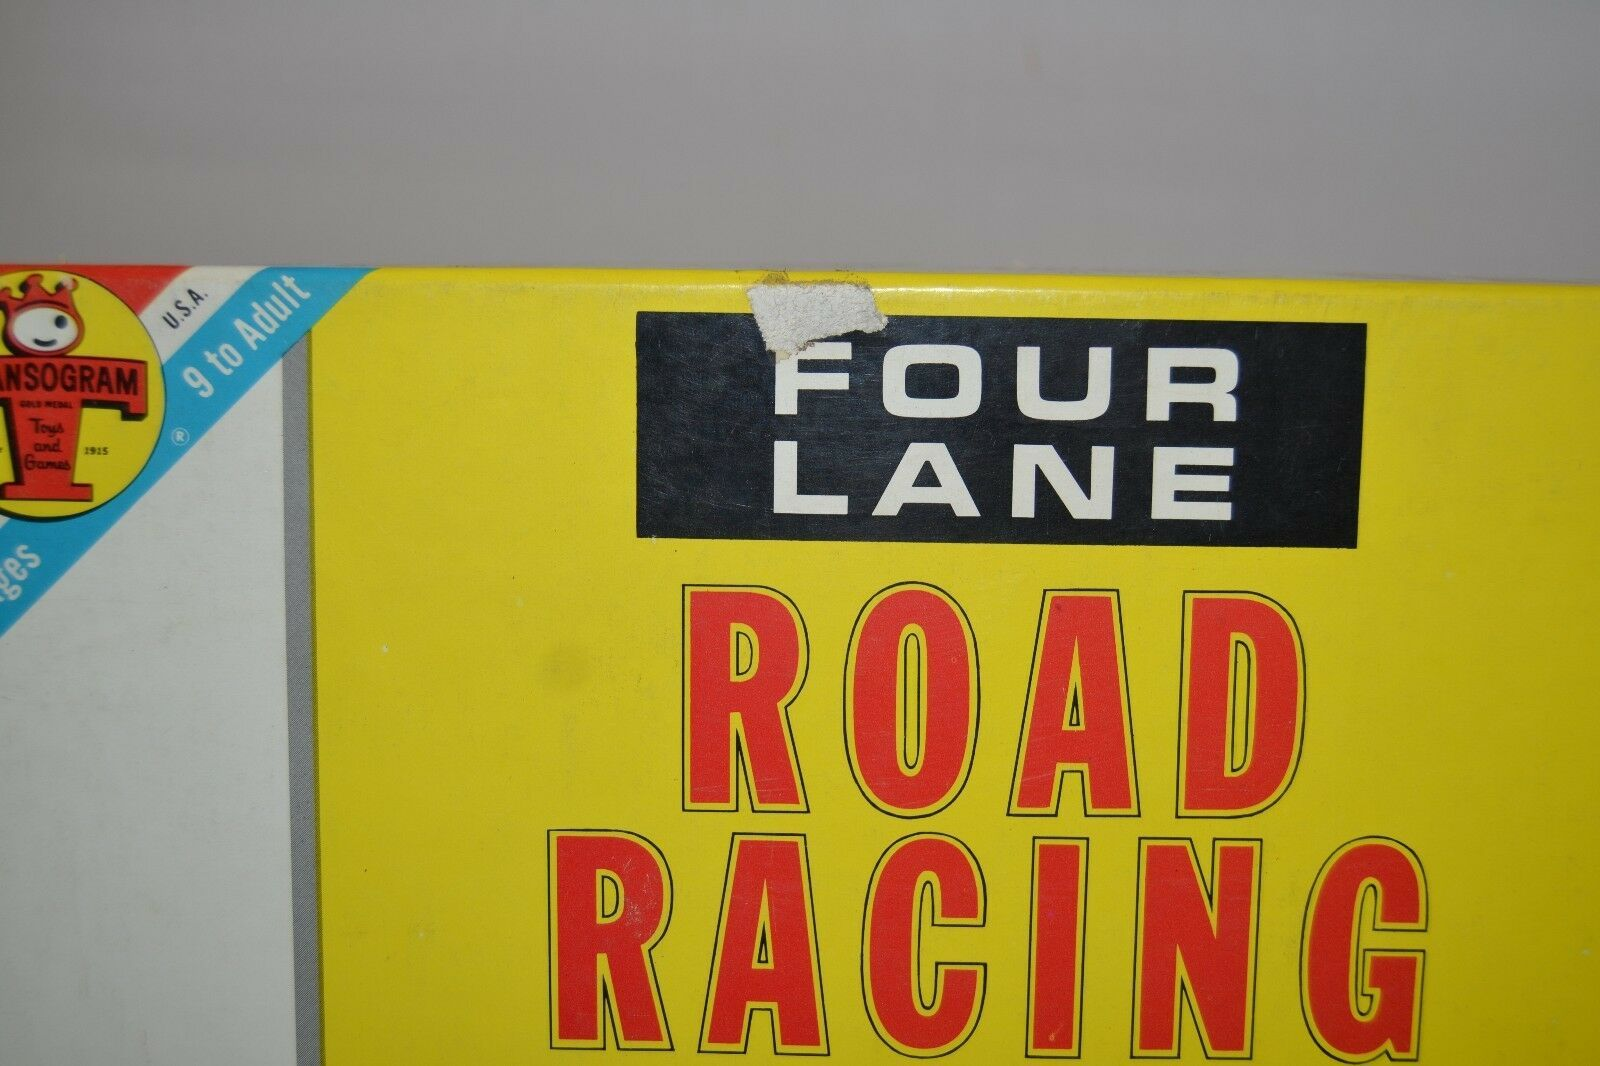 Transogram Rare Four Lane Road Racing Game on the Famous Sebring Track 1963  image 11